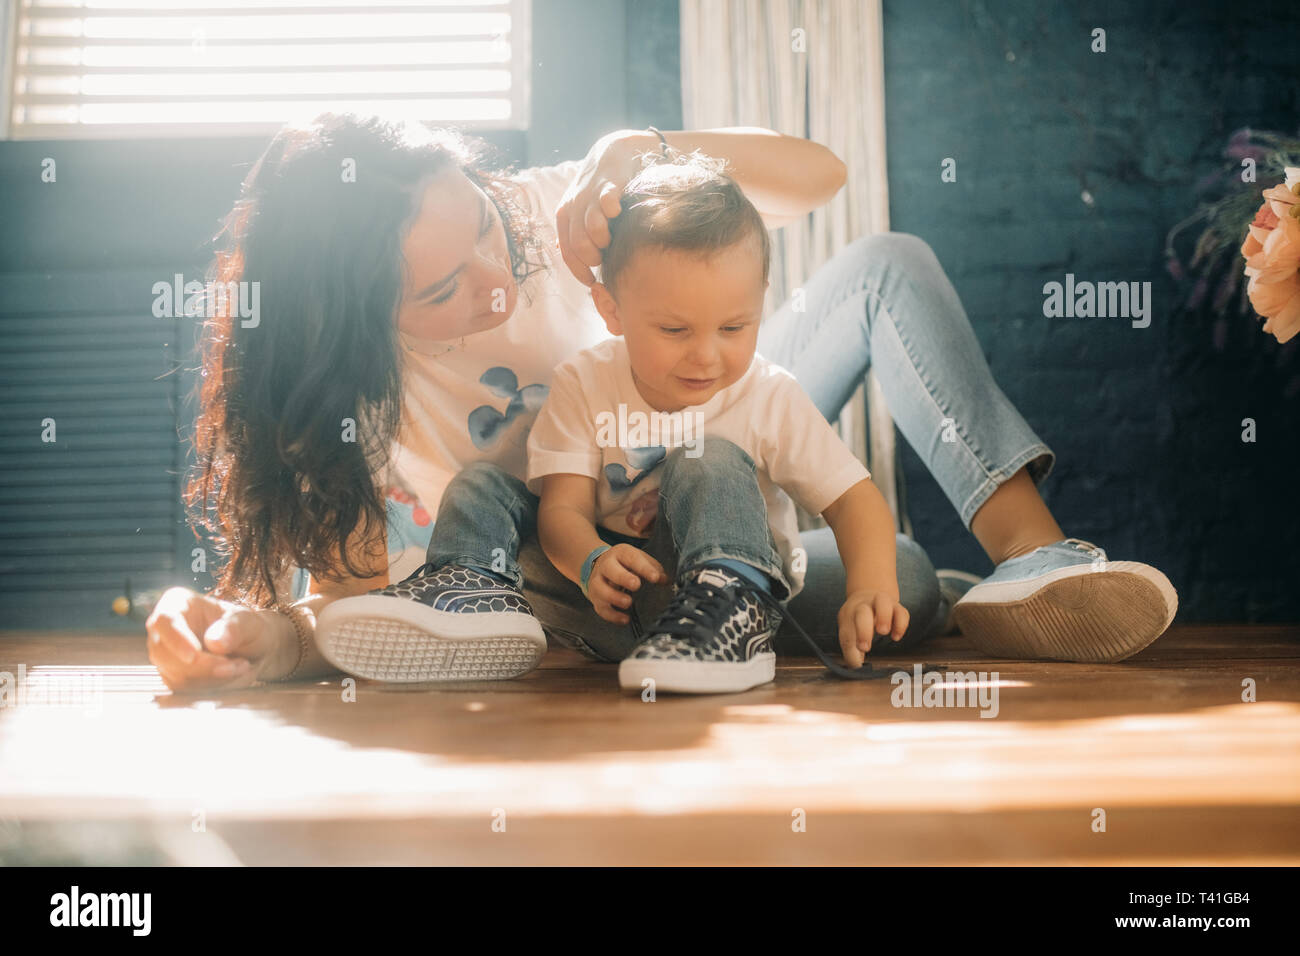 Toddler boy ties the shoelaces on his sneakers next to his mother. - Stock Image